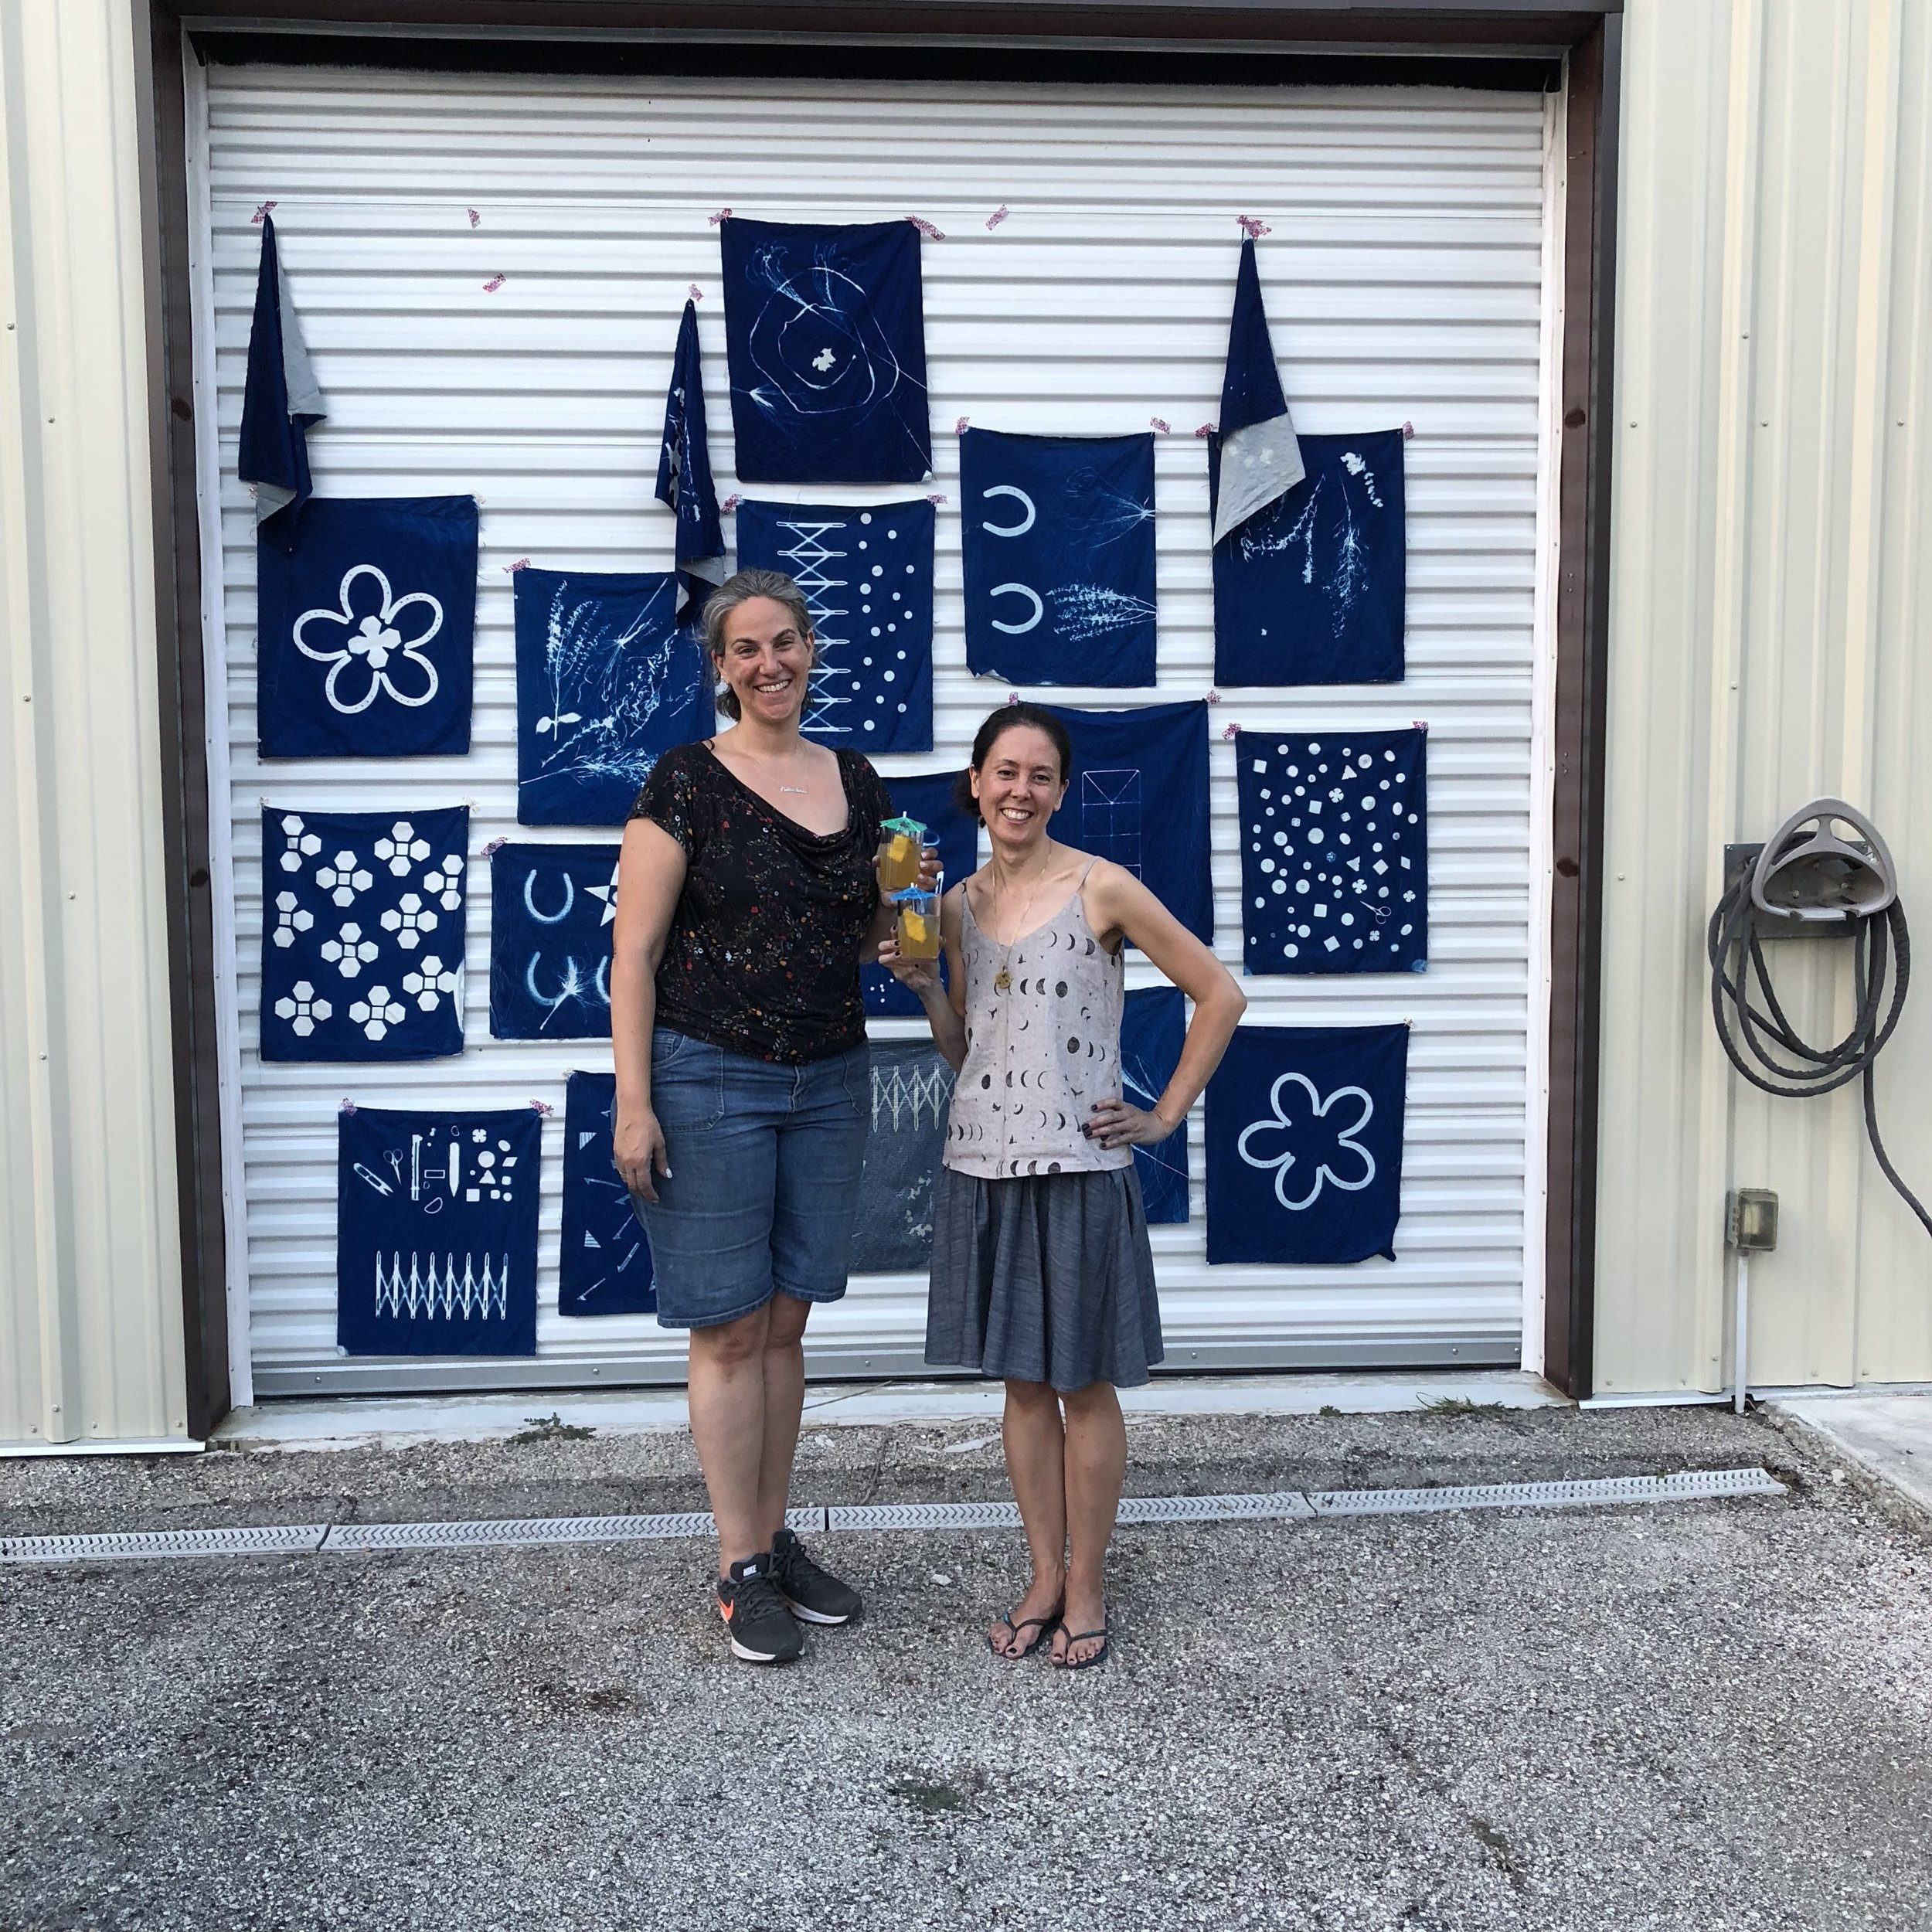 Handmade Getaway authors and awesome peeps Jacqueline and Karyn